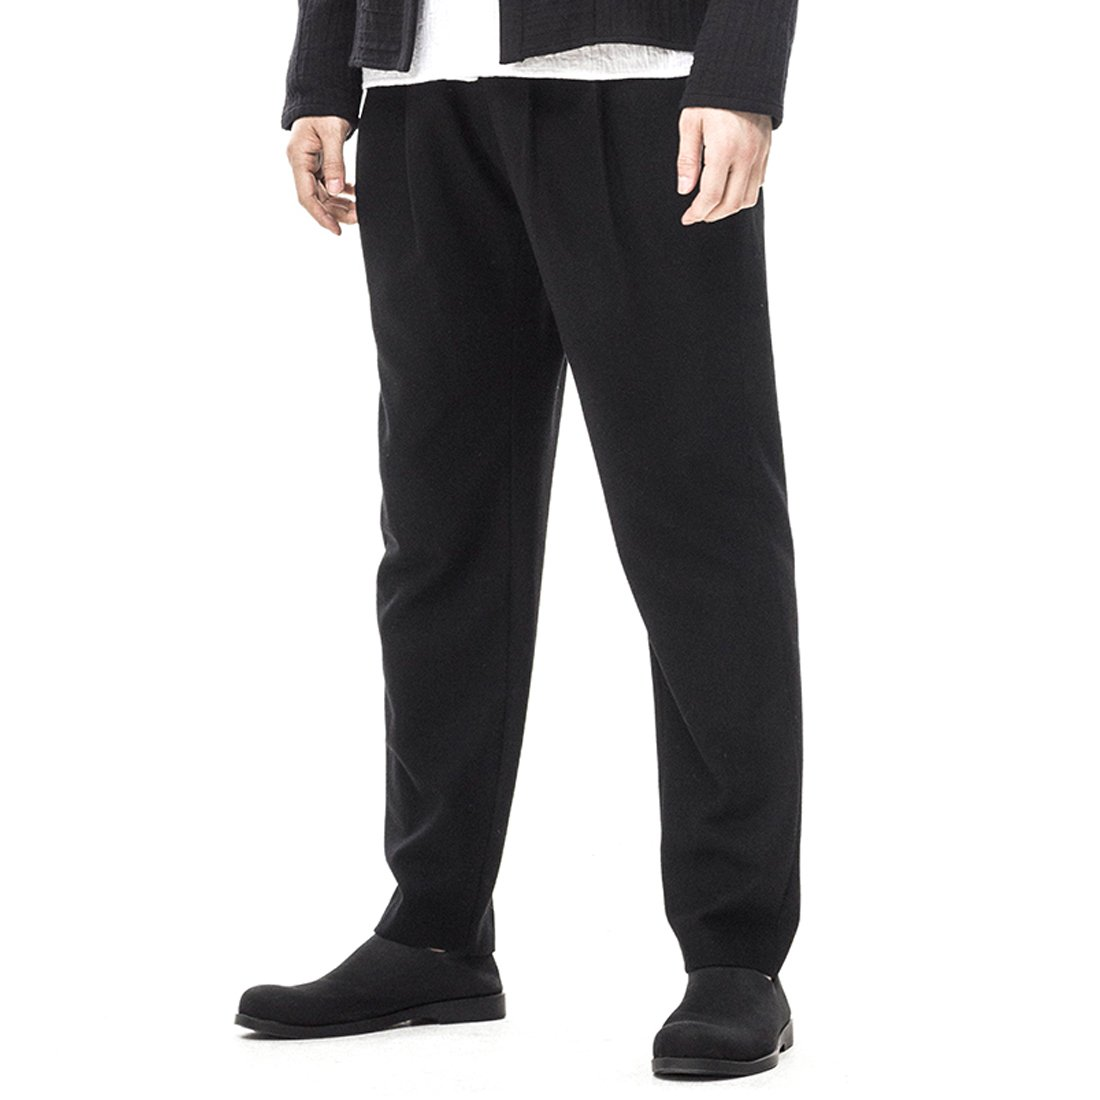 Kung Fu Smith Vintage Tai Chi Casual Wool Slim Fit Pencil Pants Trouser, Black M